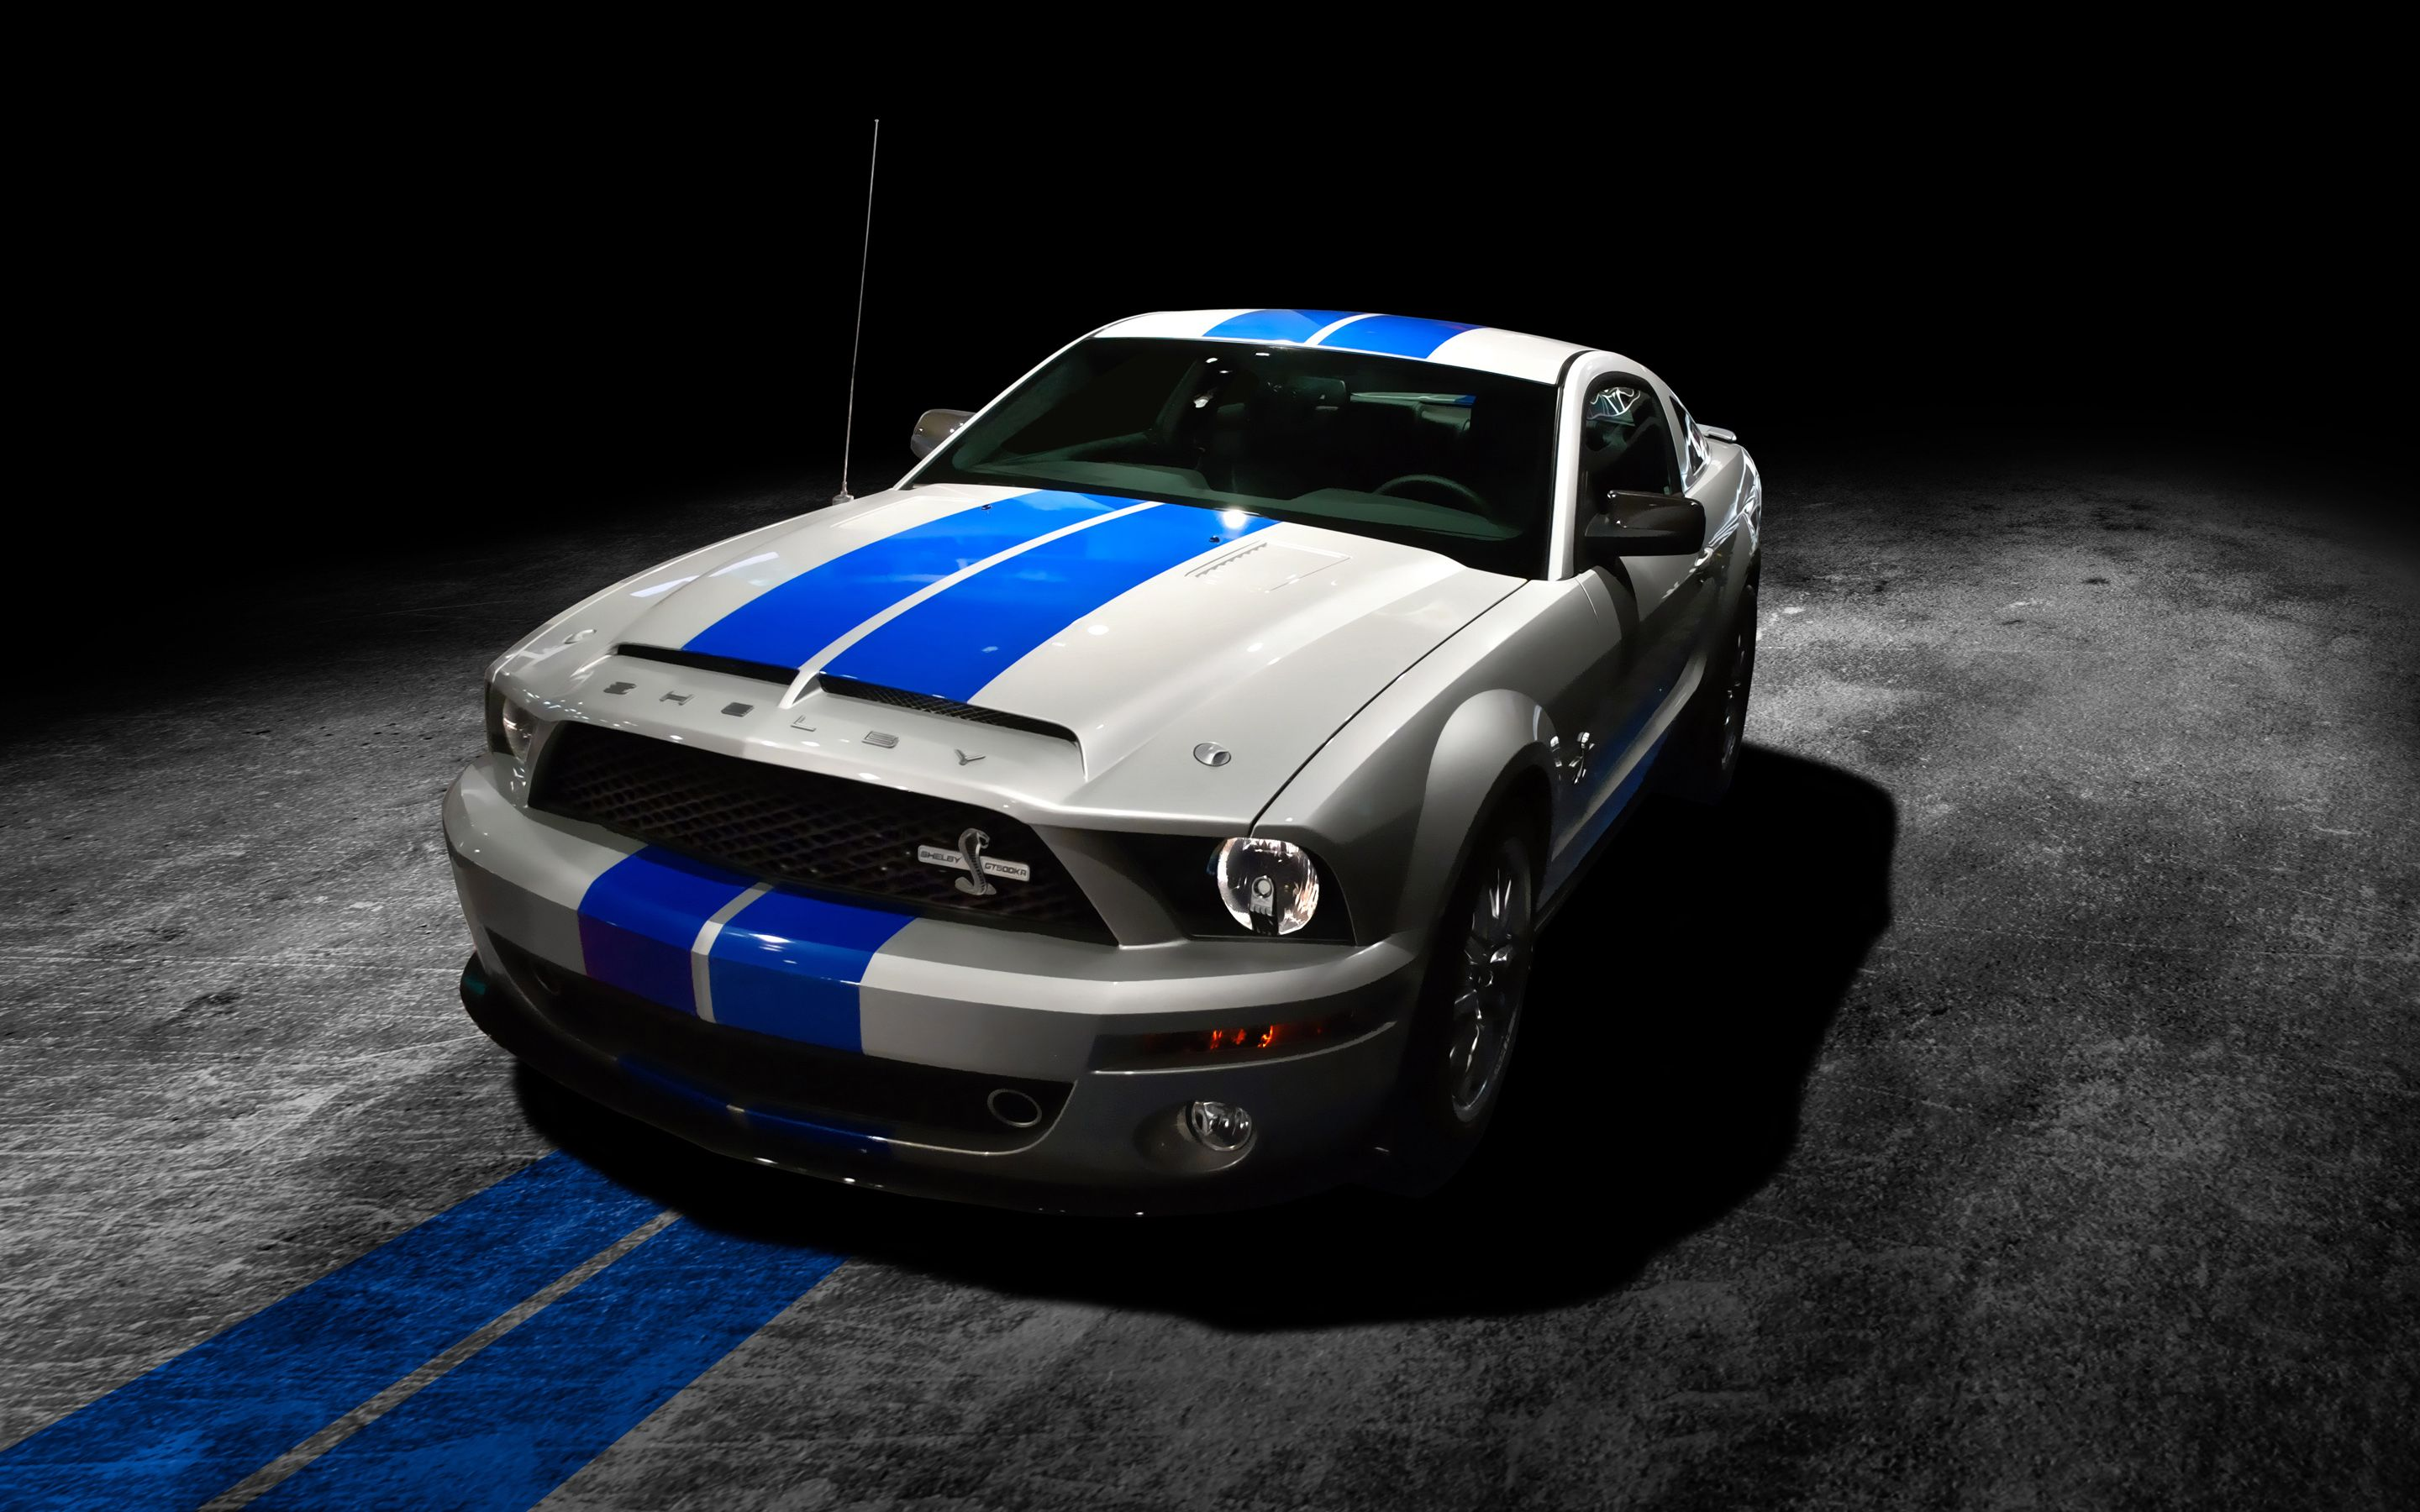 Hd wallpapers widescreen 1080p 3d ford mustang shelby gt500 2013 wallpapers hd wallpapers